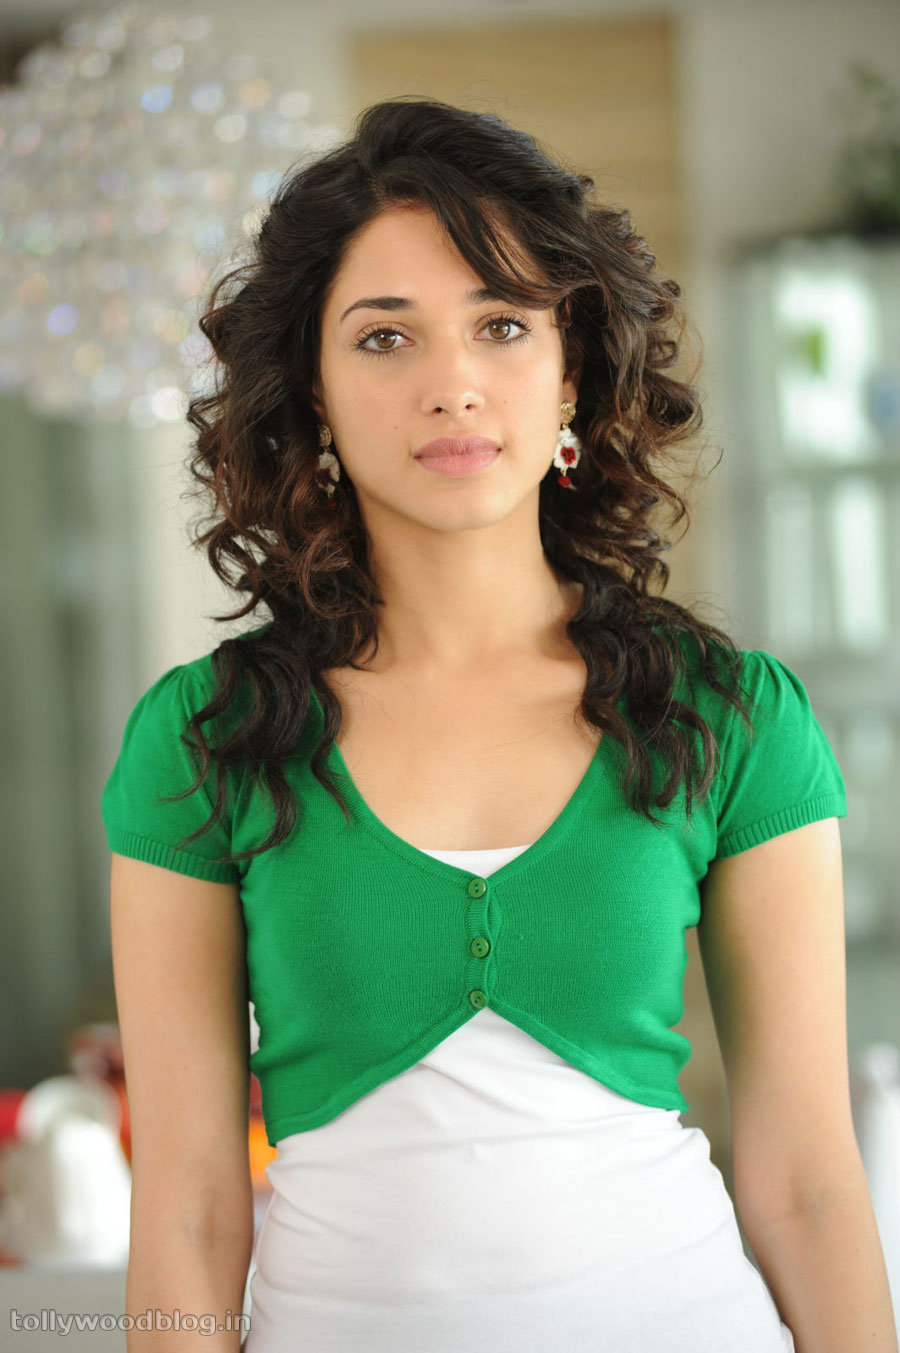 Tamanna Photo Gallery: Fair Skin Actress Tamanna Latest Photo Shoot Gallery